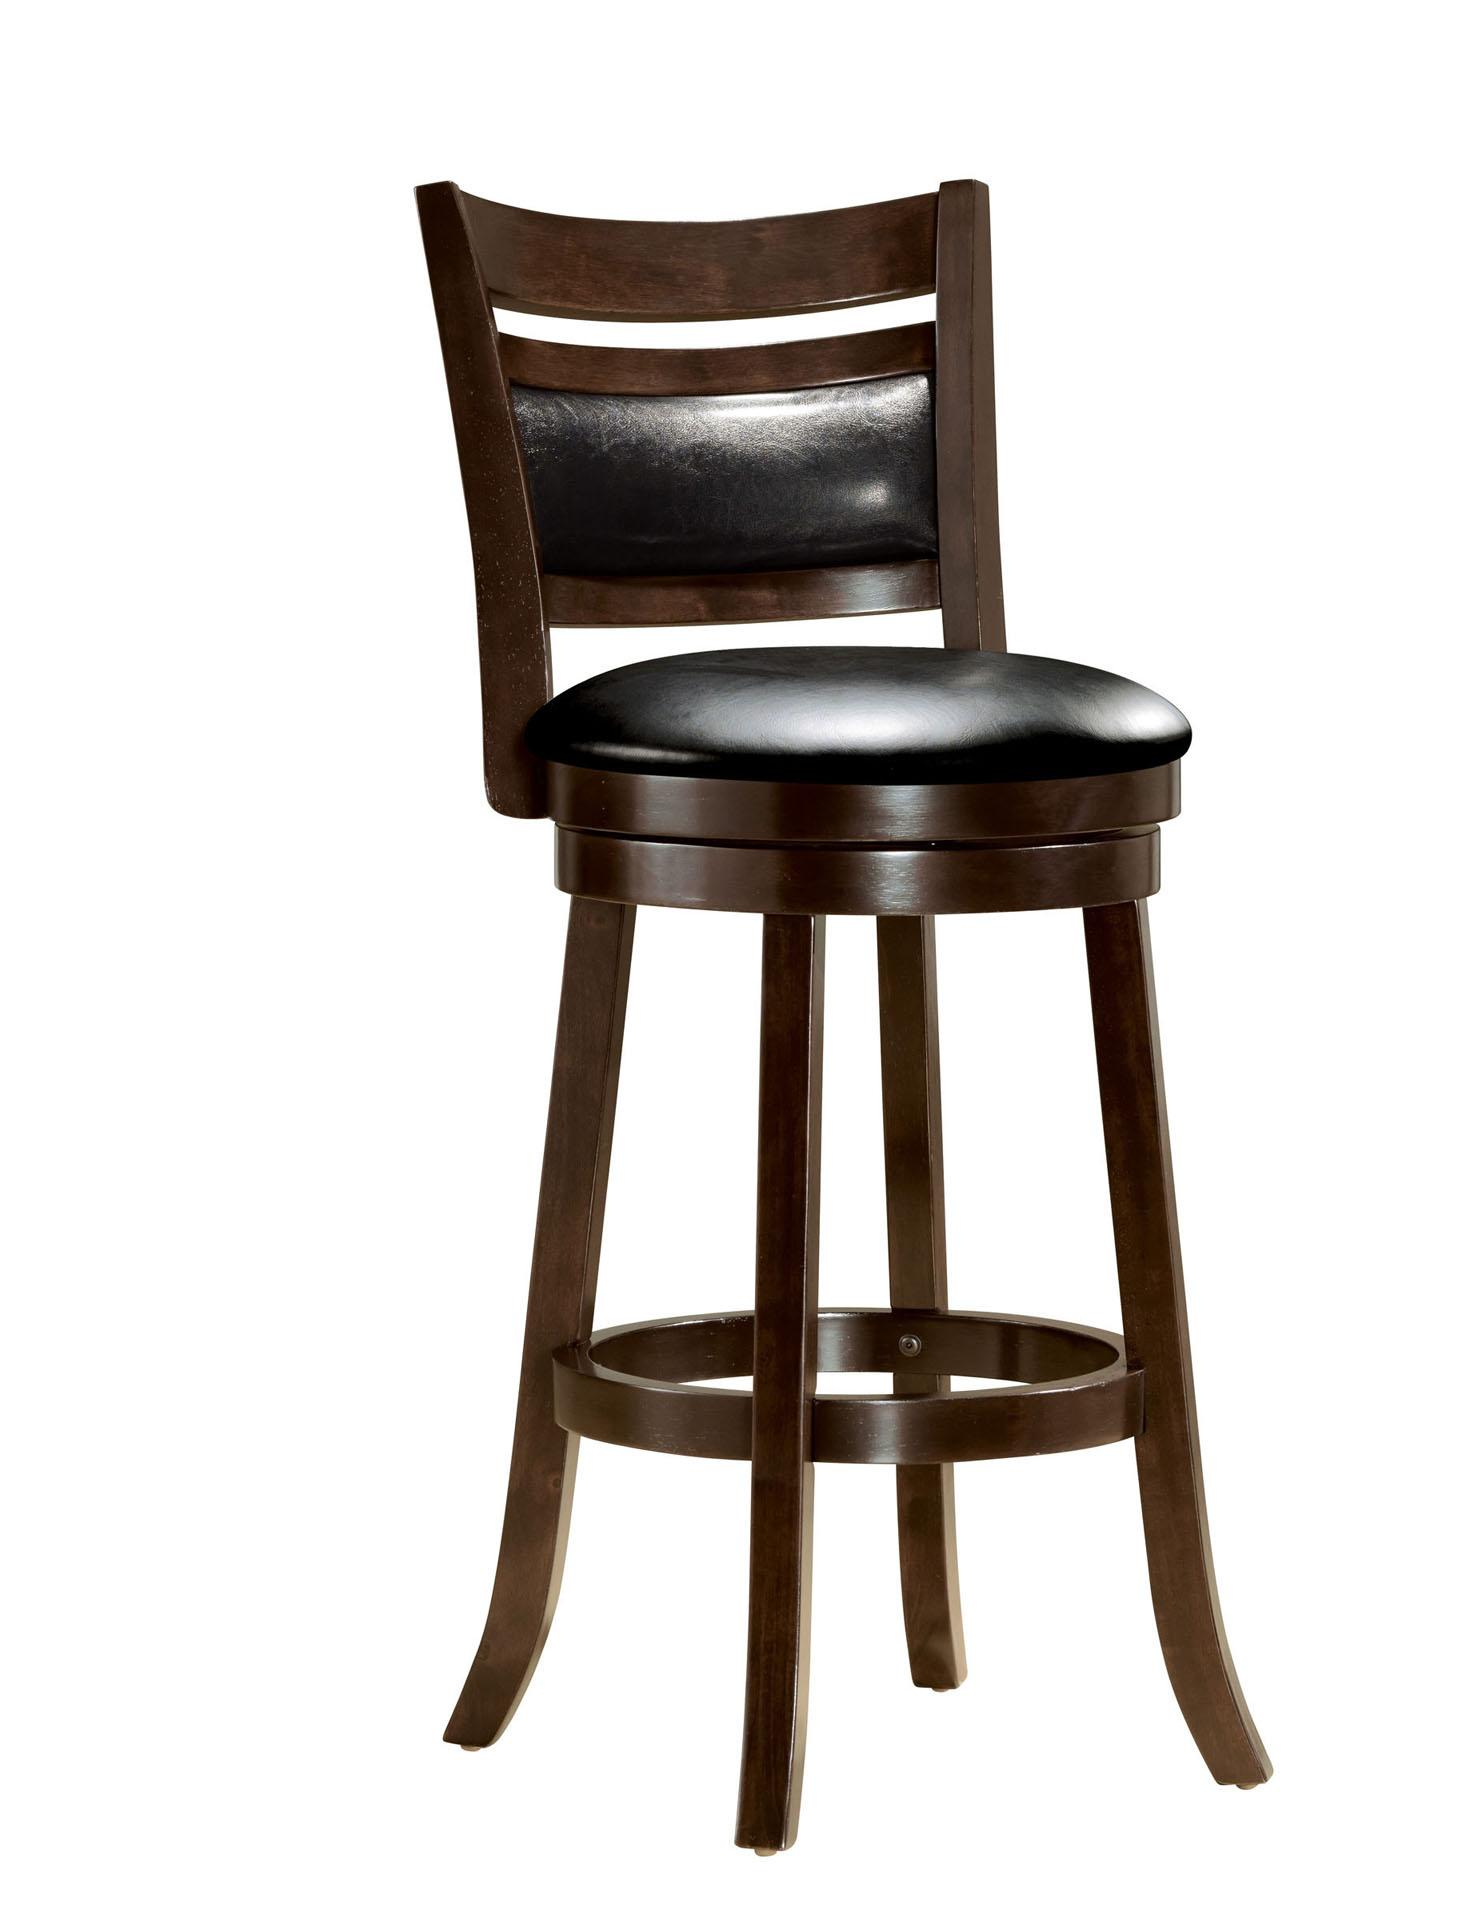 Acme Furniture Tabib Bar Stool - Item Number: 96086